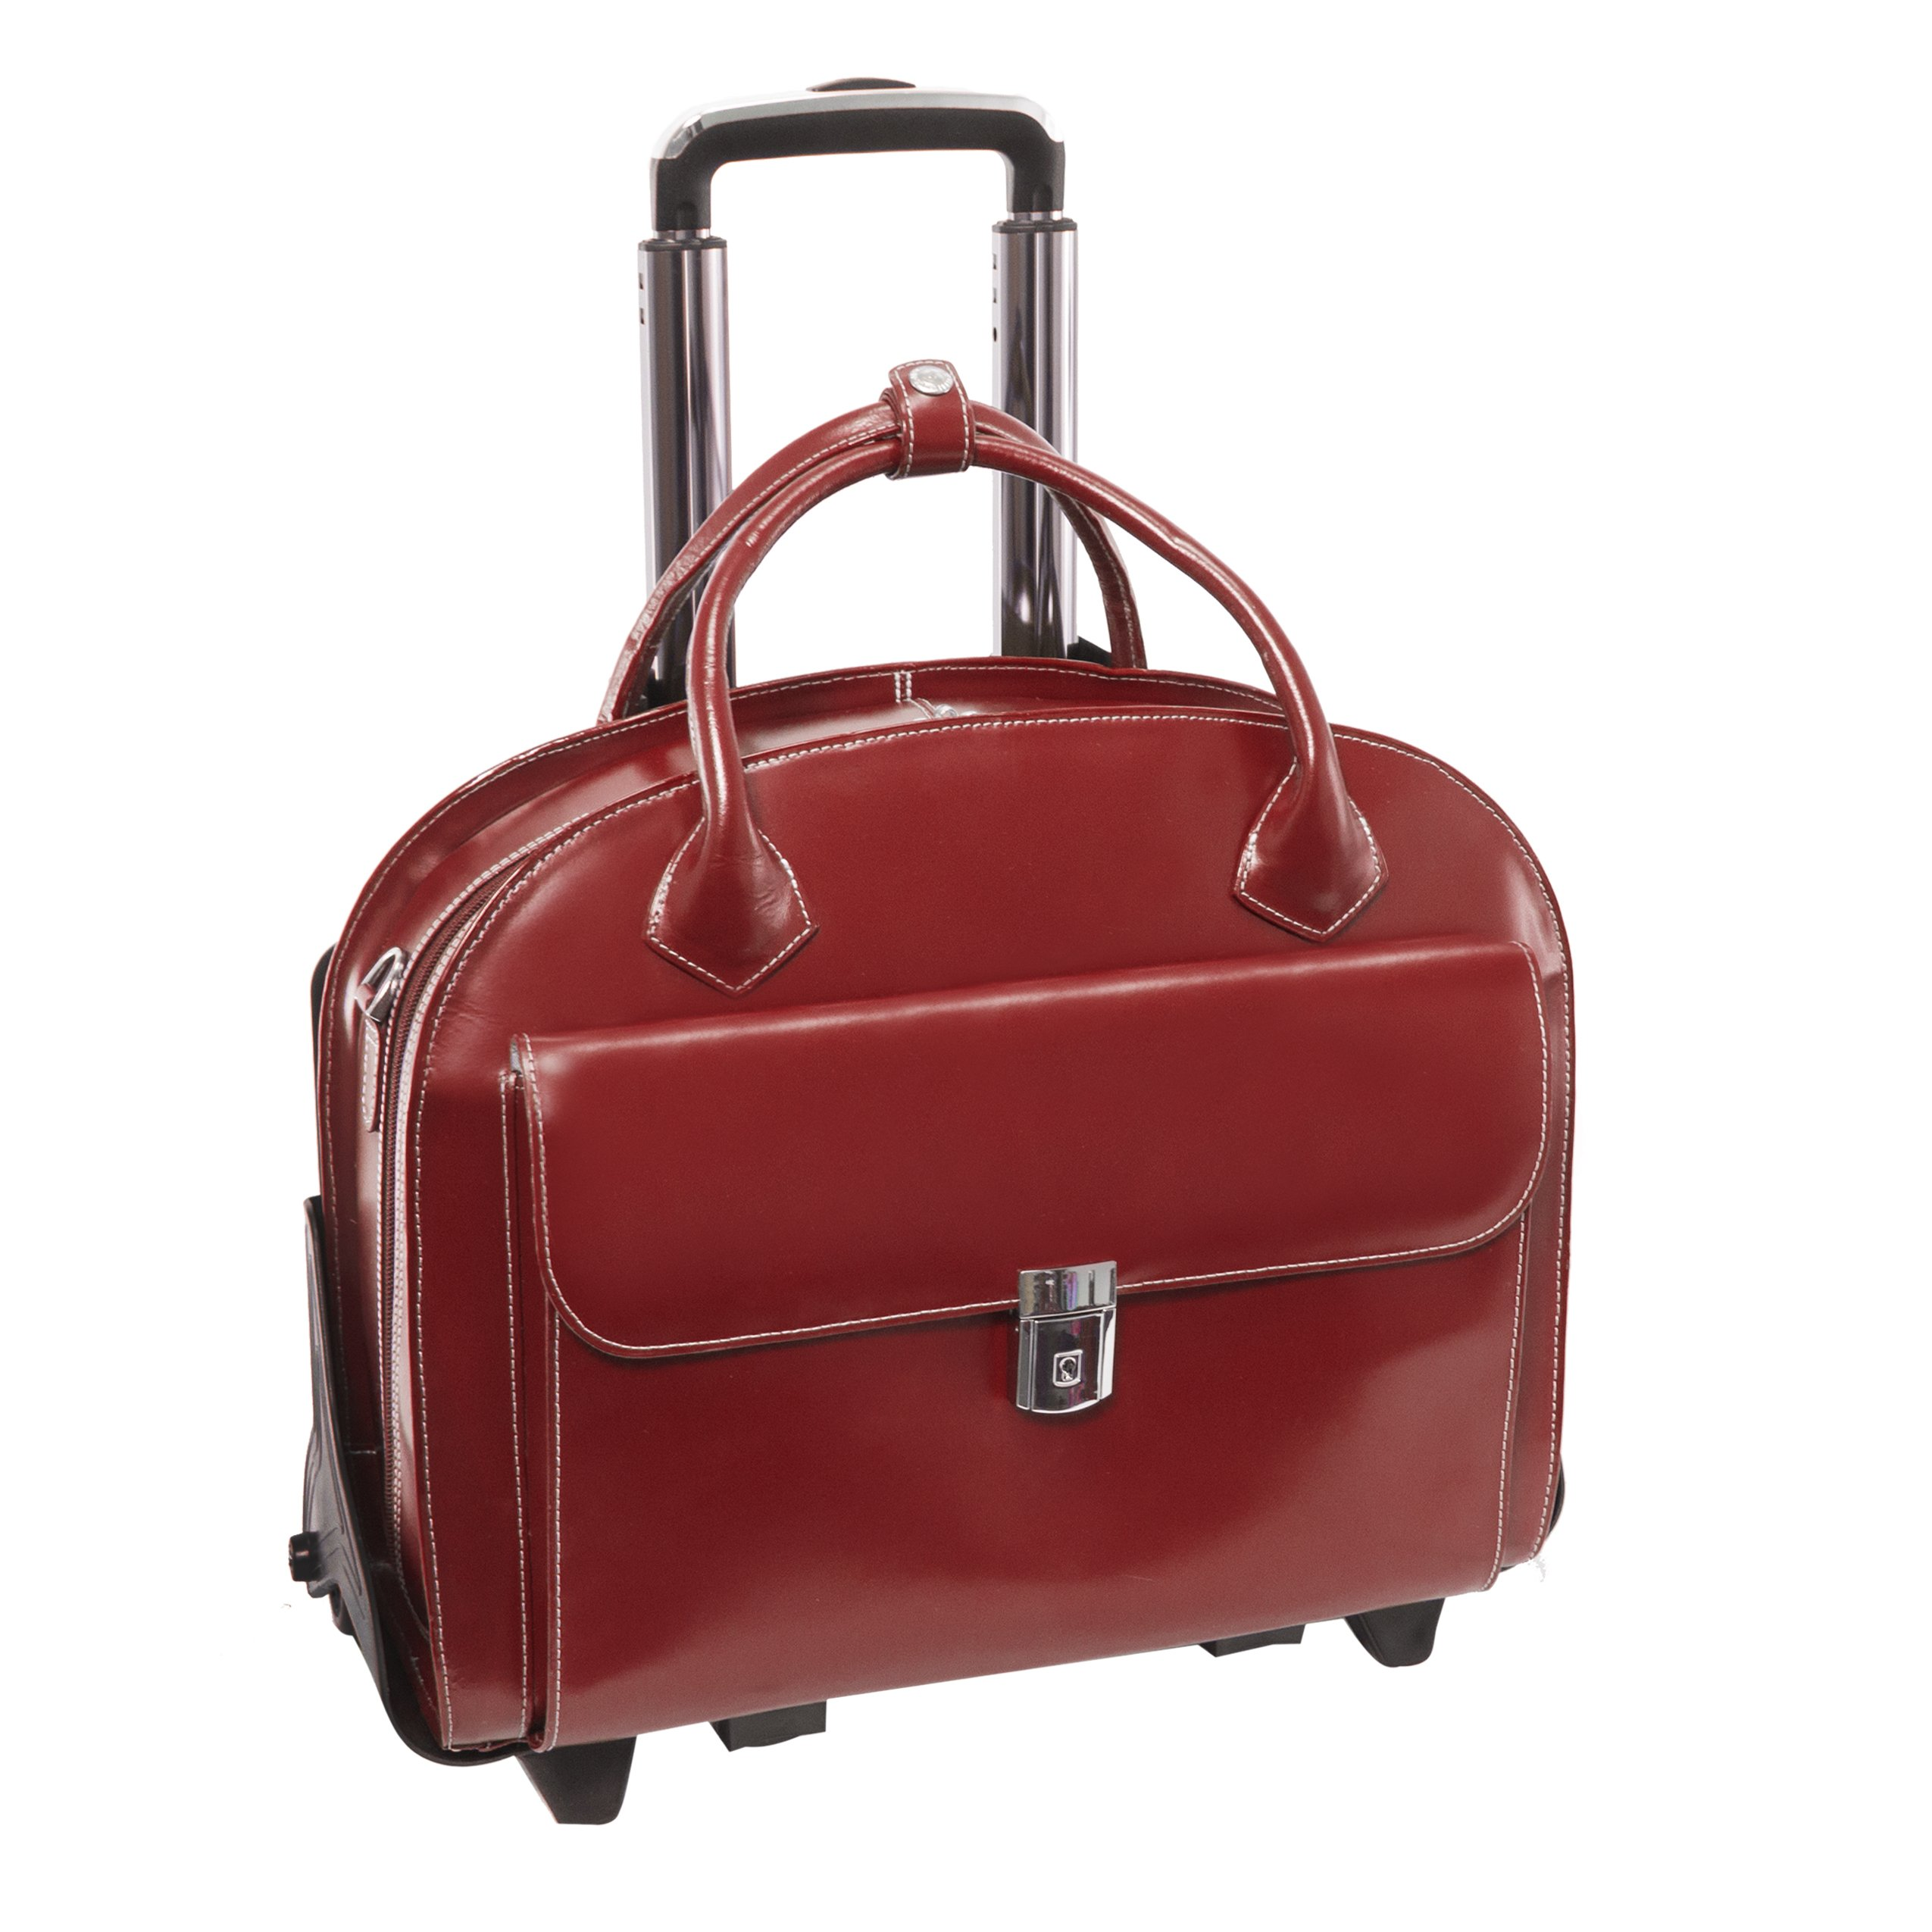 Mcklein USA 94366 Glen Ellyn, 15.4'' Leather Detachable Wheeled Case, One Size, Red